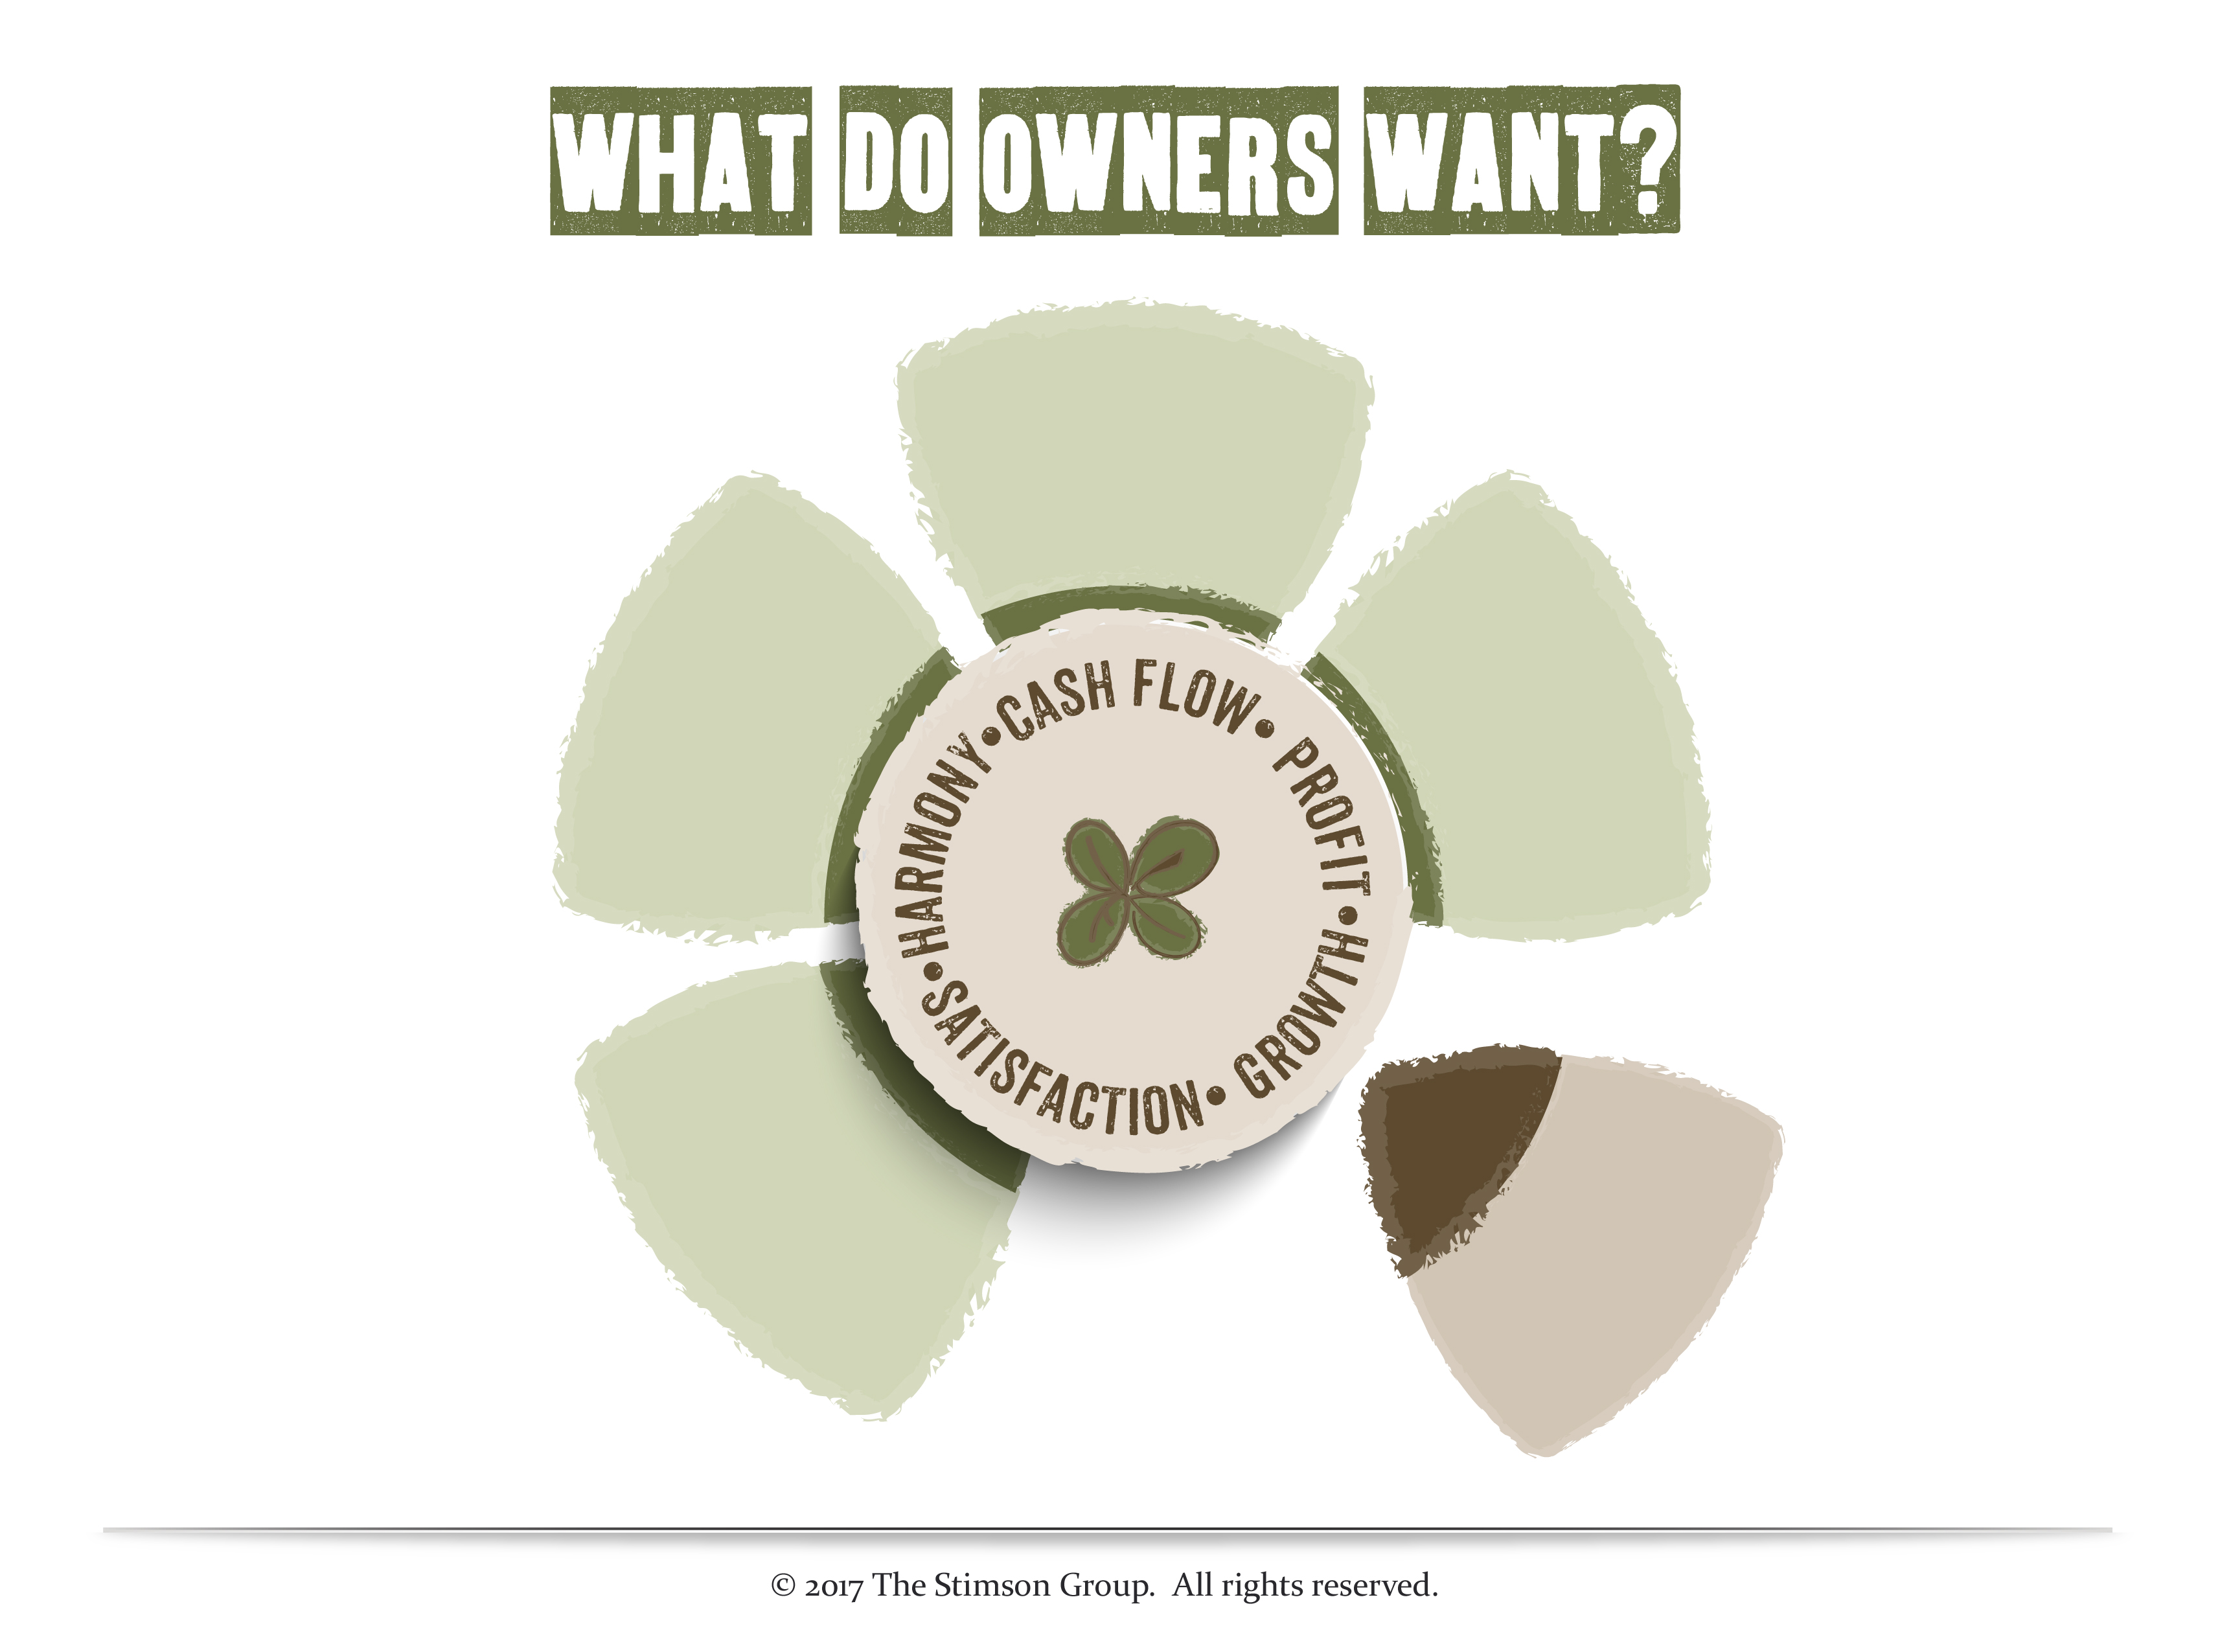 What Do Owners Want for Their Businesses? - The Stimson Group